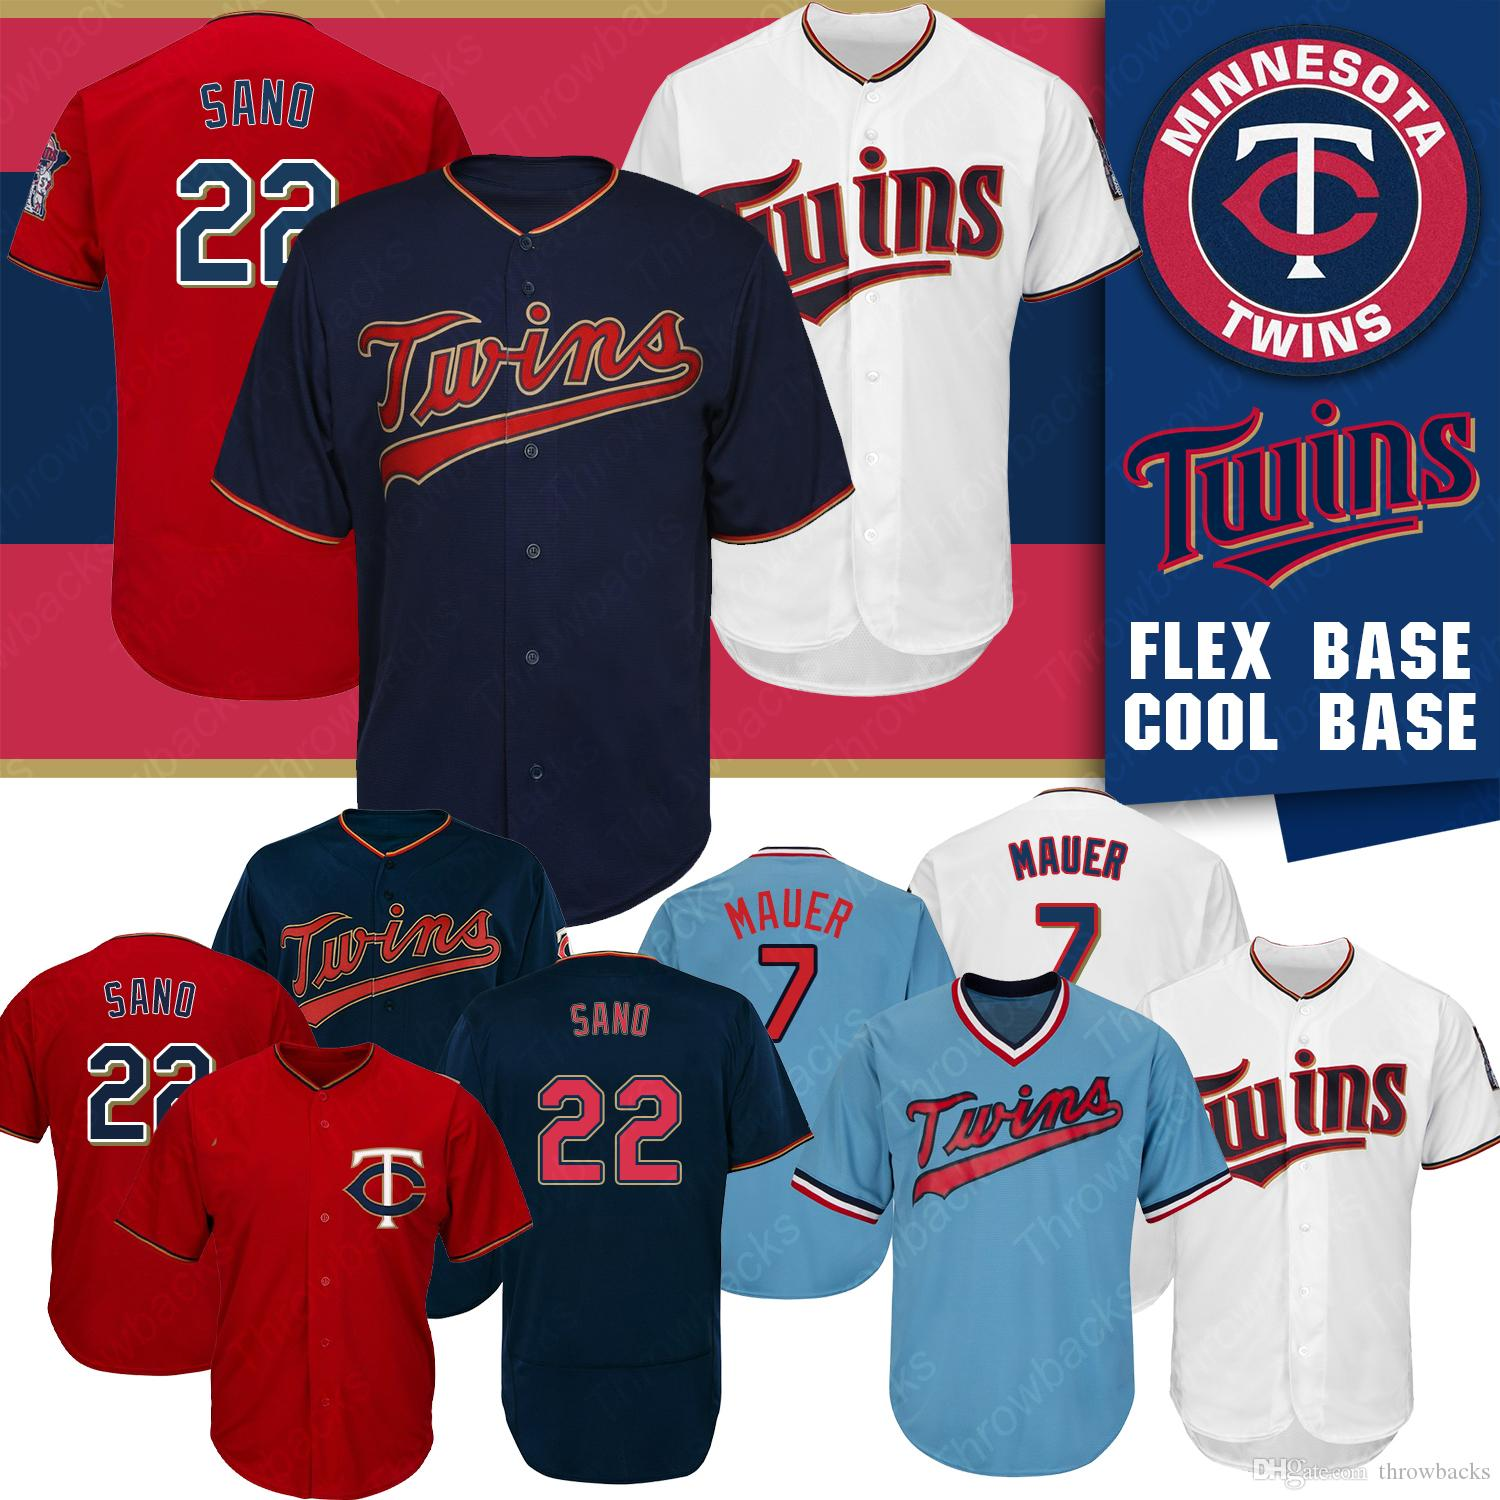 96fc9ed2f10 2019 Minnesota Twins Jersey Miguel Sano Joe Mauer Cool Base Felx Base  Baseball Jersey Color White Red From Throwbacks